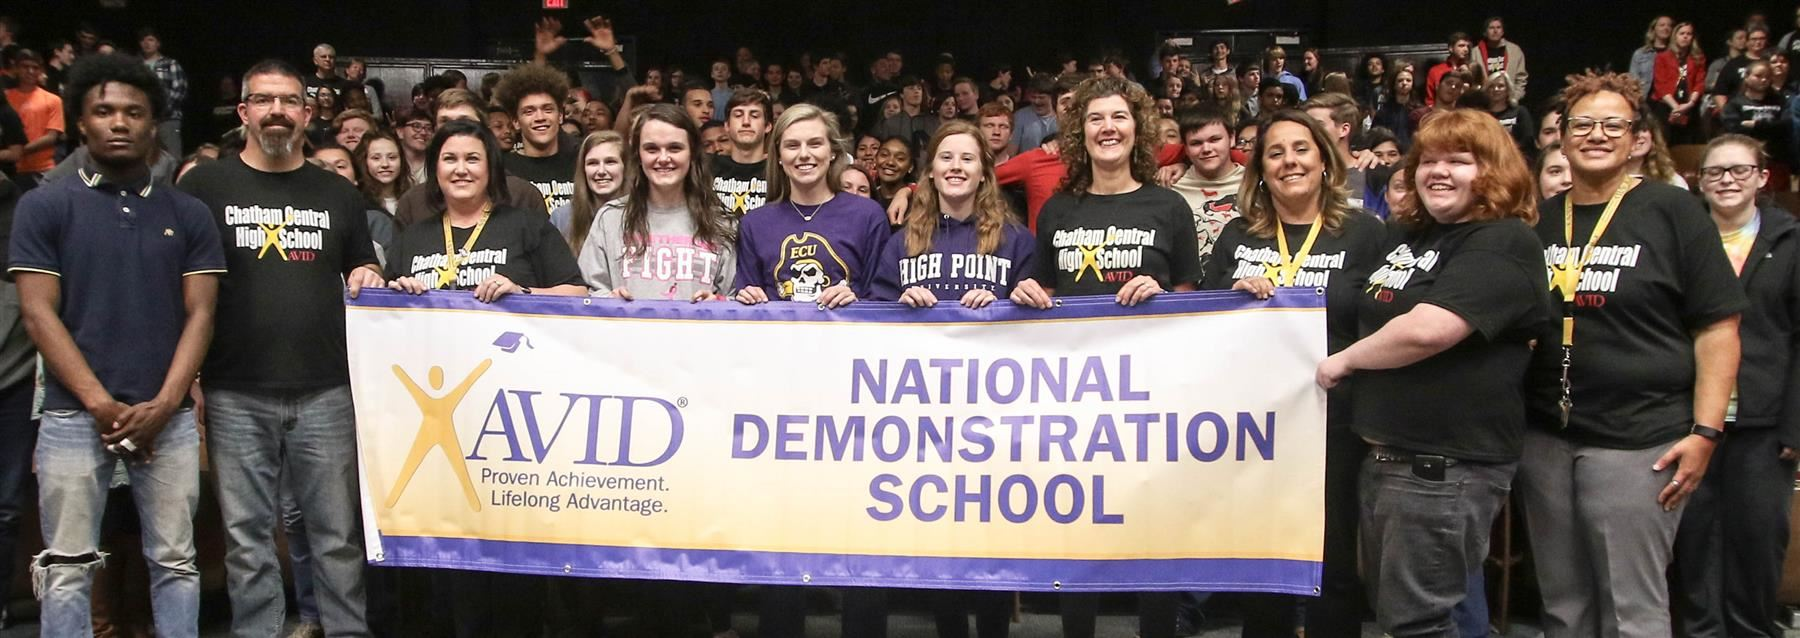 Chatham Central High School became a national demonstration school for AVID on March 28, 2019.